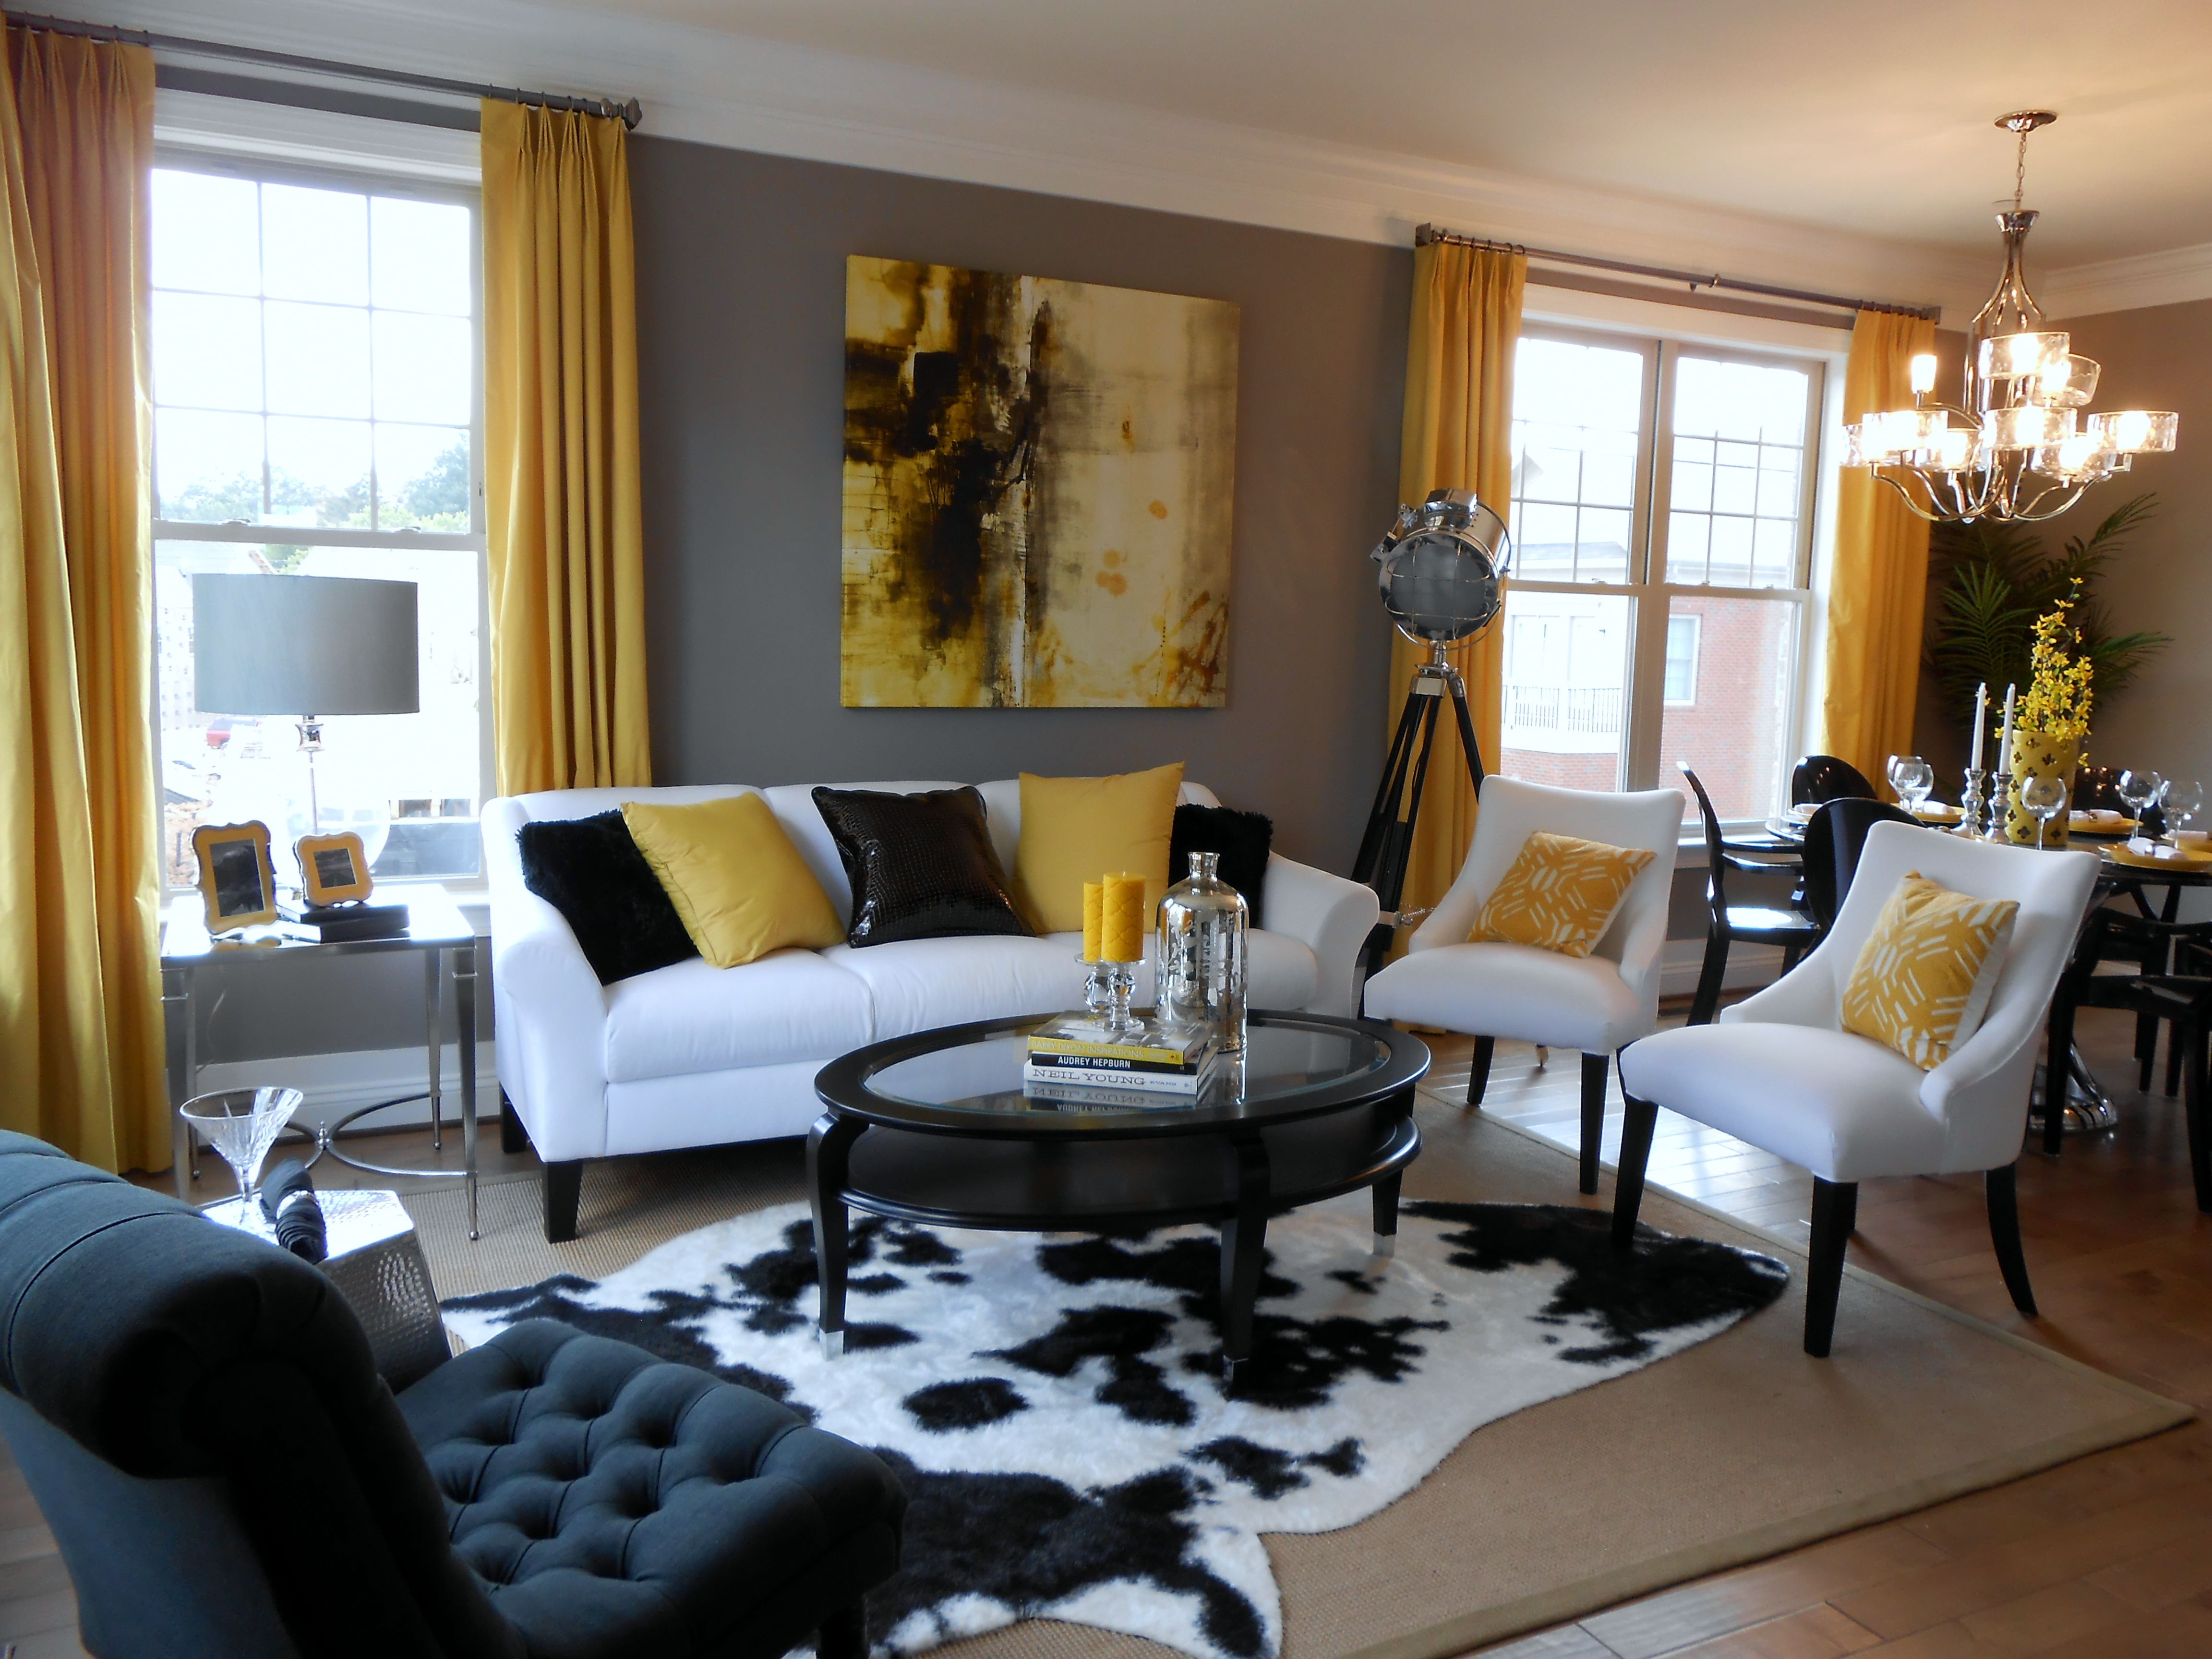 Design Trend Animal Instincts Model Home Furniture Clearance Yellow Walls Living Room Leopard Living Rooms Sitting Room Design Animal living room decor